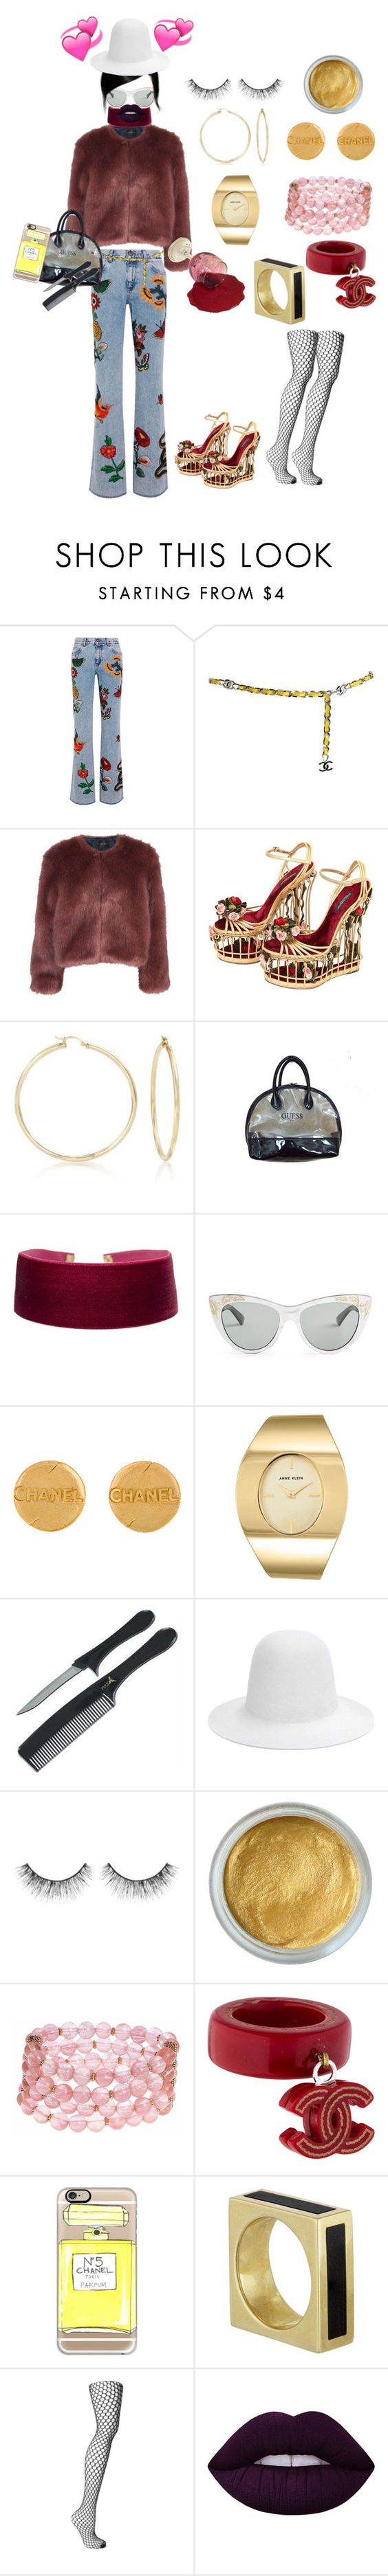 """""""HEARTBROKEN."""" by allen-taevon ❤ liked on Polyvore featuring Gucci, Chanel, Stine Goya, Dolce&Gabbana, Ross-Simons, GUESS, Anne Klein, Sephora Collection, Lonna & Lilly and Casetify"""